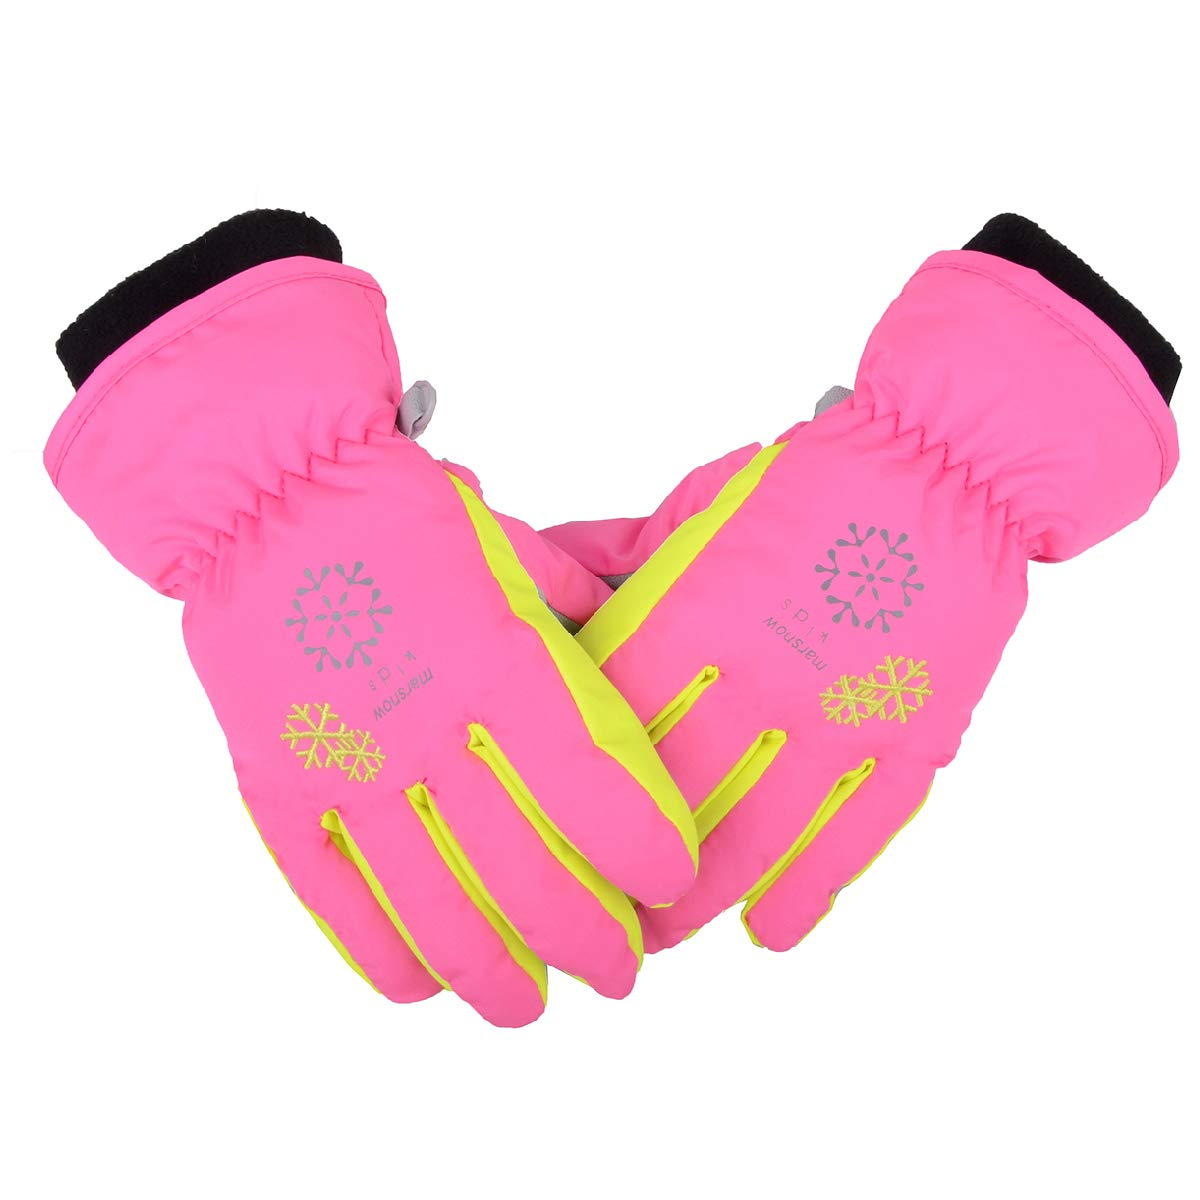 Triwonder Waterproof and Breathable Ski Snowboard Gloves for Kids Outdoor Thermal Warm Winter Ski Gloves